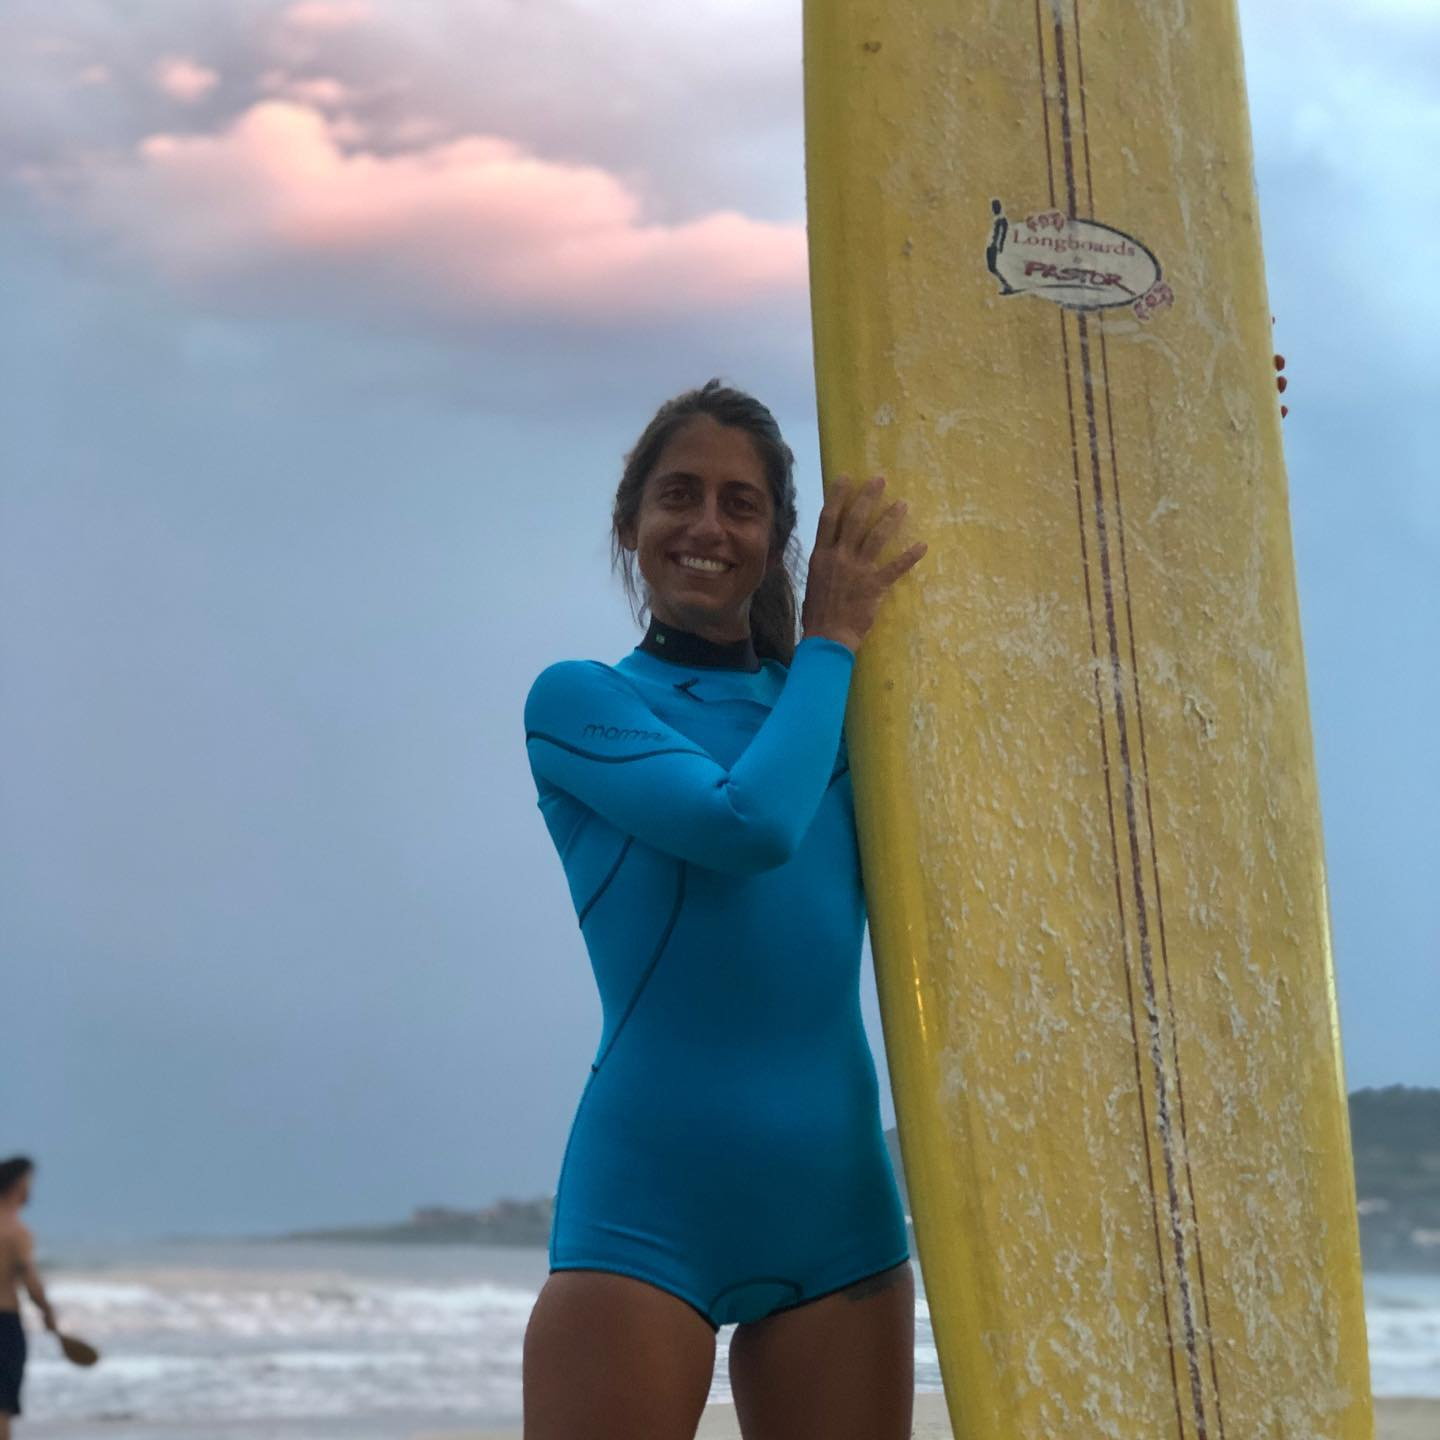 www.catkabira.com/blog/ Fear Focus Training: Let Me Tell You About Surfing.